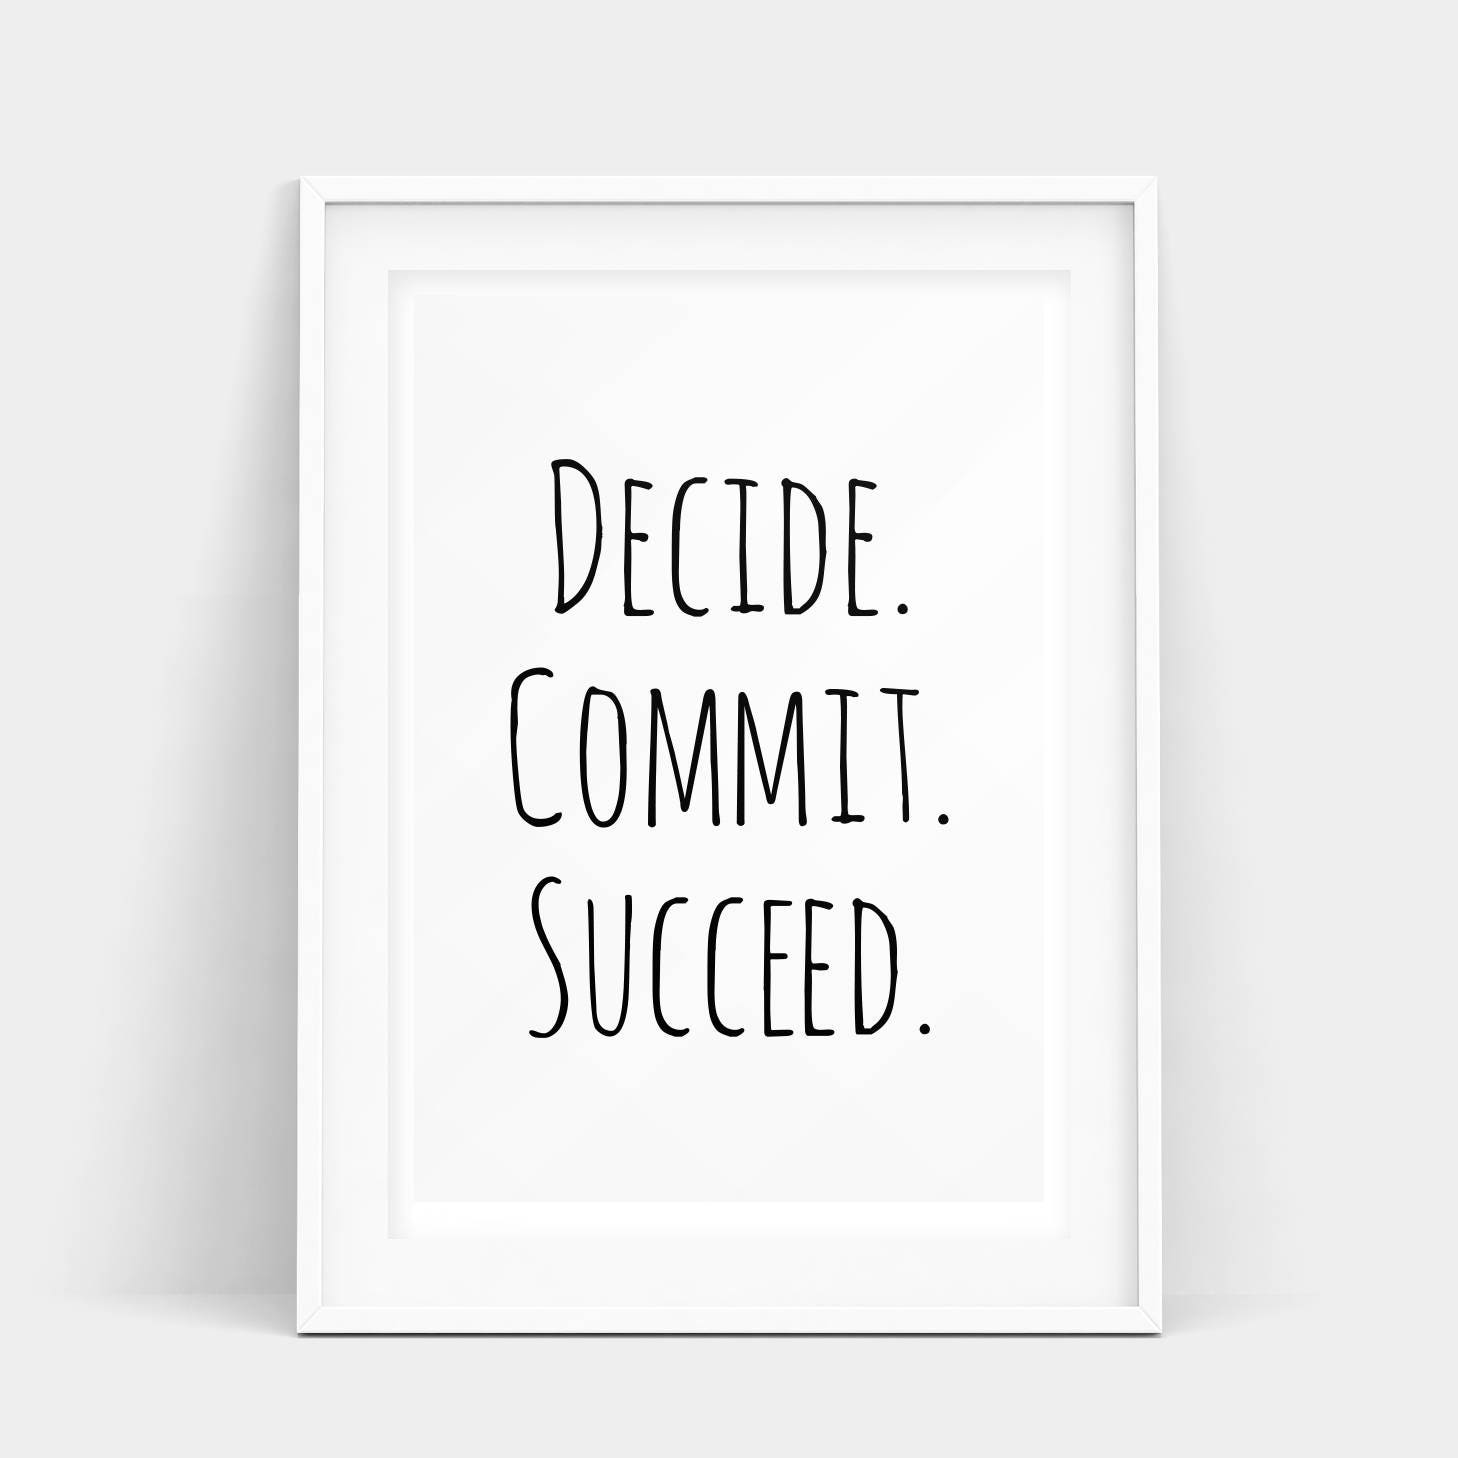 Inspirational Quotes About Failure: Decide Commit Succeed Print Motivational Poster Quote